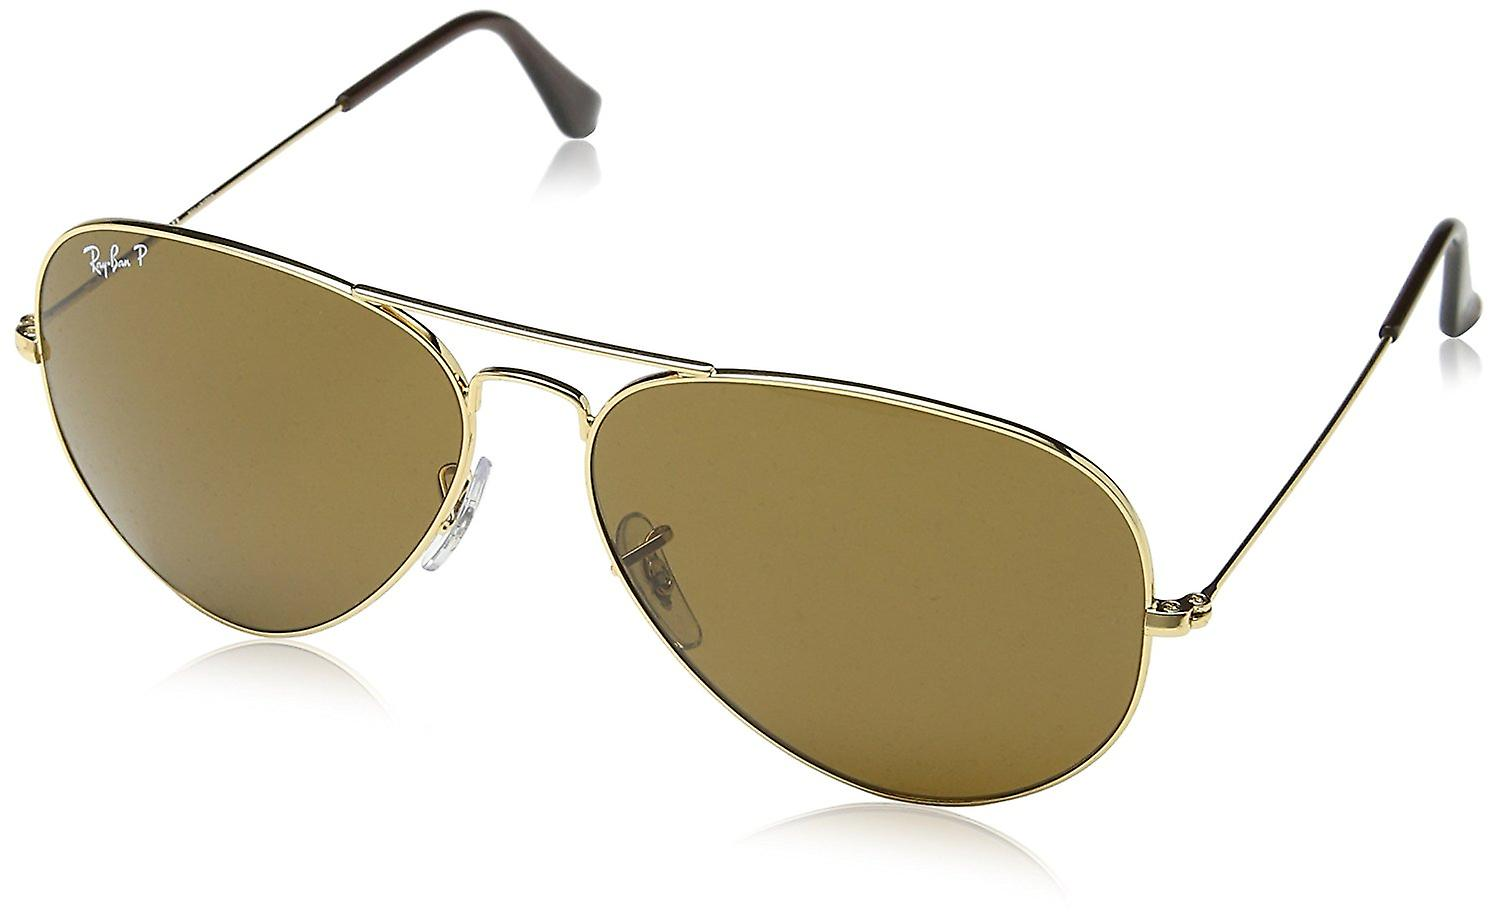 2565035ae0 Ray-Ban Aviator Classic Gold Polarized Sunglasses - RB3025-001 57-62 ...